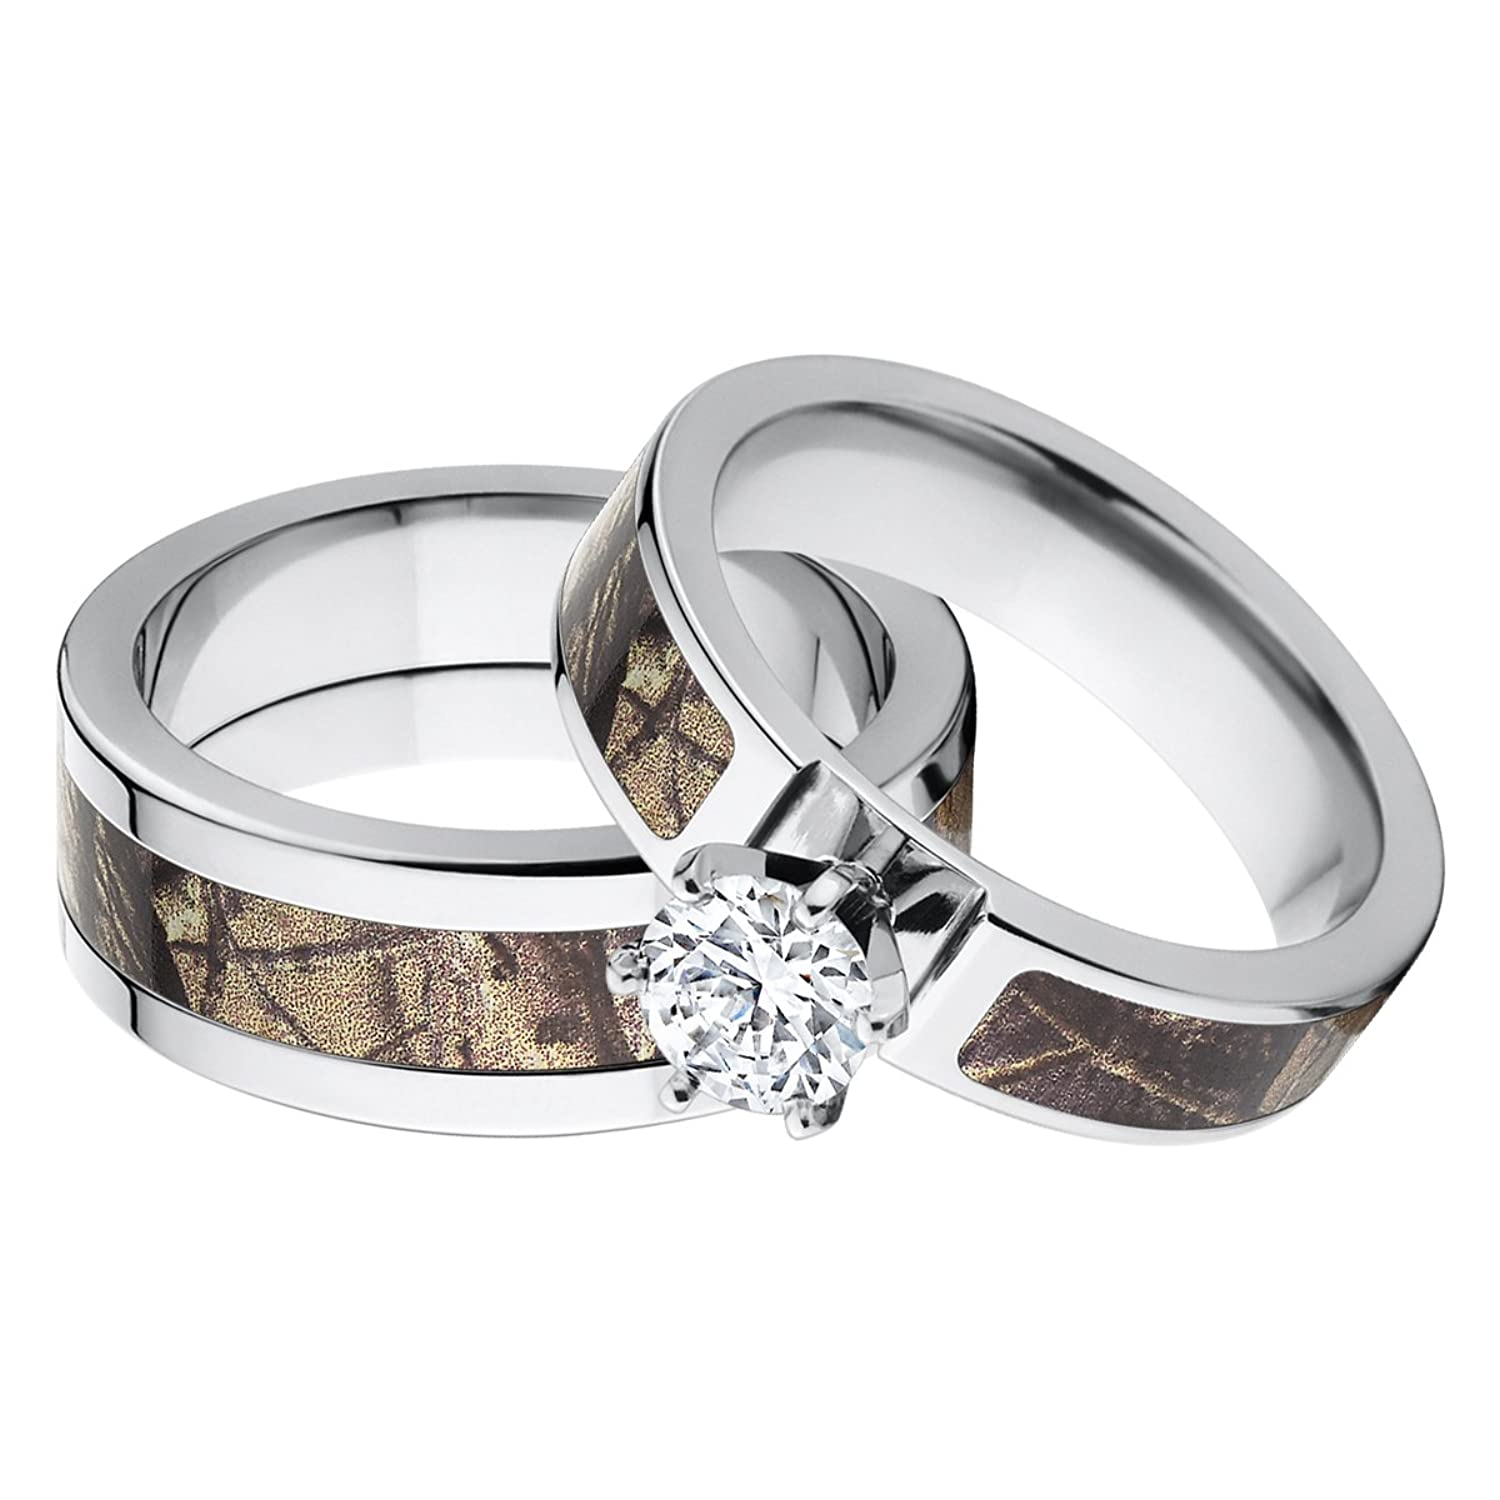 amazoncom his and hers matching realtree ap camouflage wedding ring set jewelry - Engagement And Wedding Ring Sets